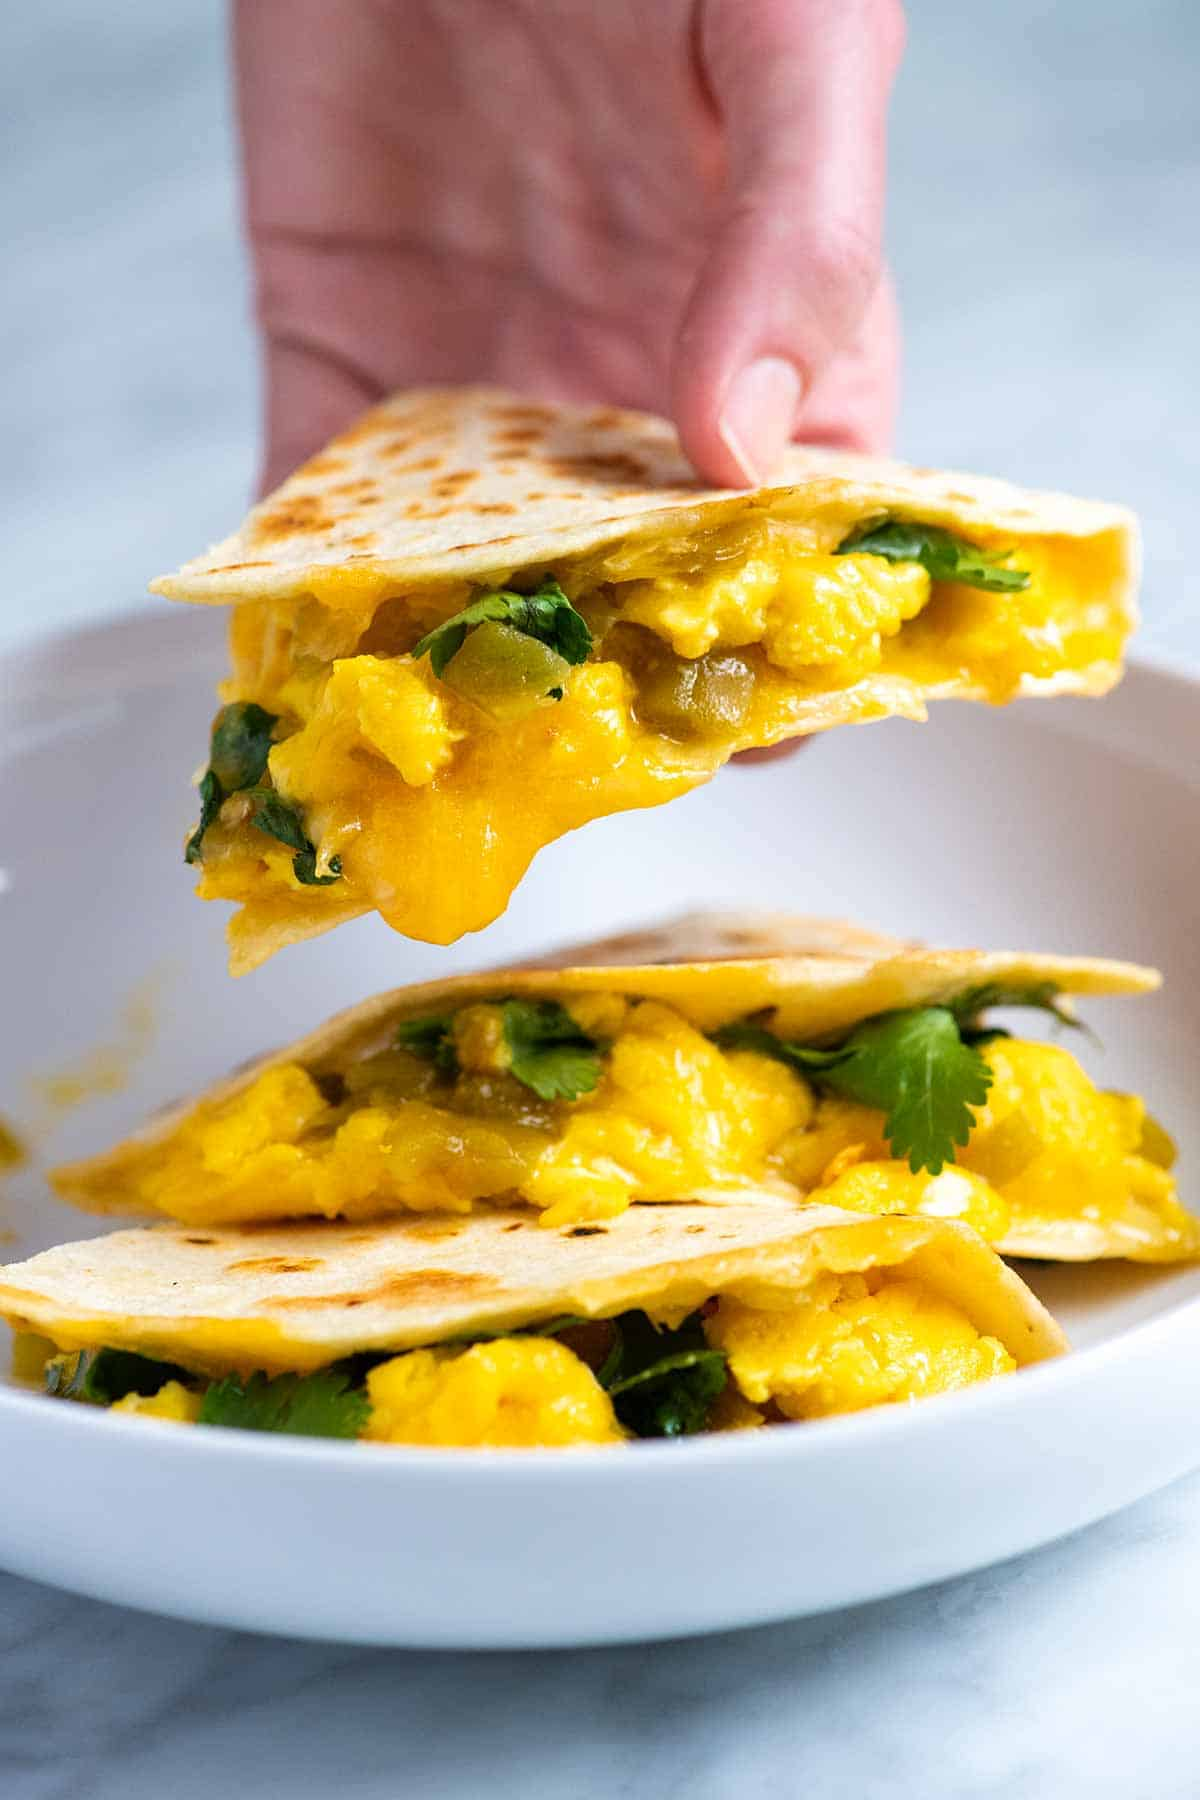 Breakfast Quesadillas with scrambled eggs and cheese.